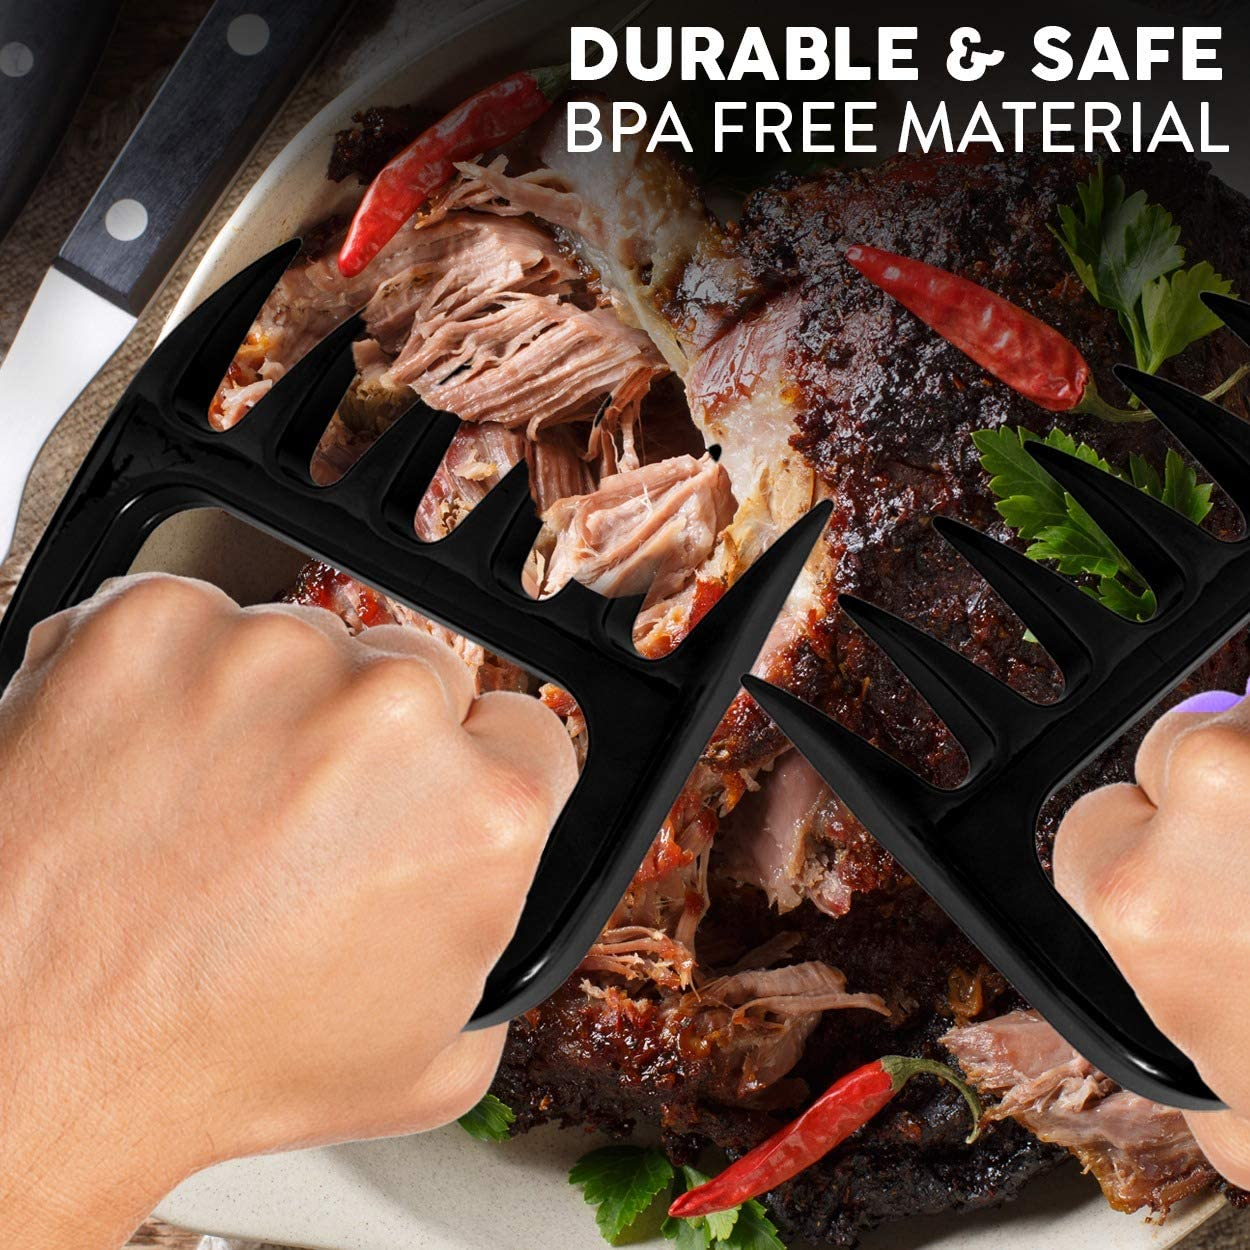 B07RM5S2TJ Kaluns Meat Claws, Best Meat and Pulled Pork Shredder Easily Lift, Handle, Pull, Cut, and Shred Meat - Ultra-Sharp Plastic Blades - Heat Resistant, BPA Free, FDA Approved, Dishwasher Safe 61wWBqWGjCL